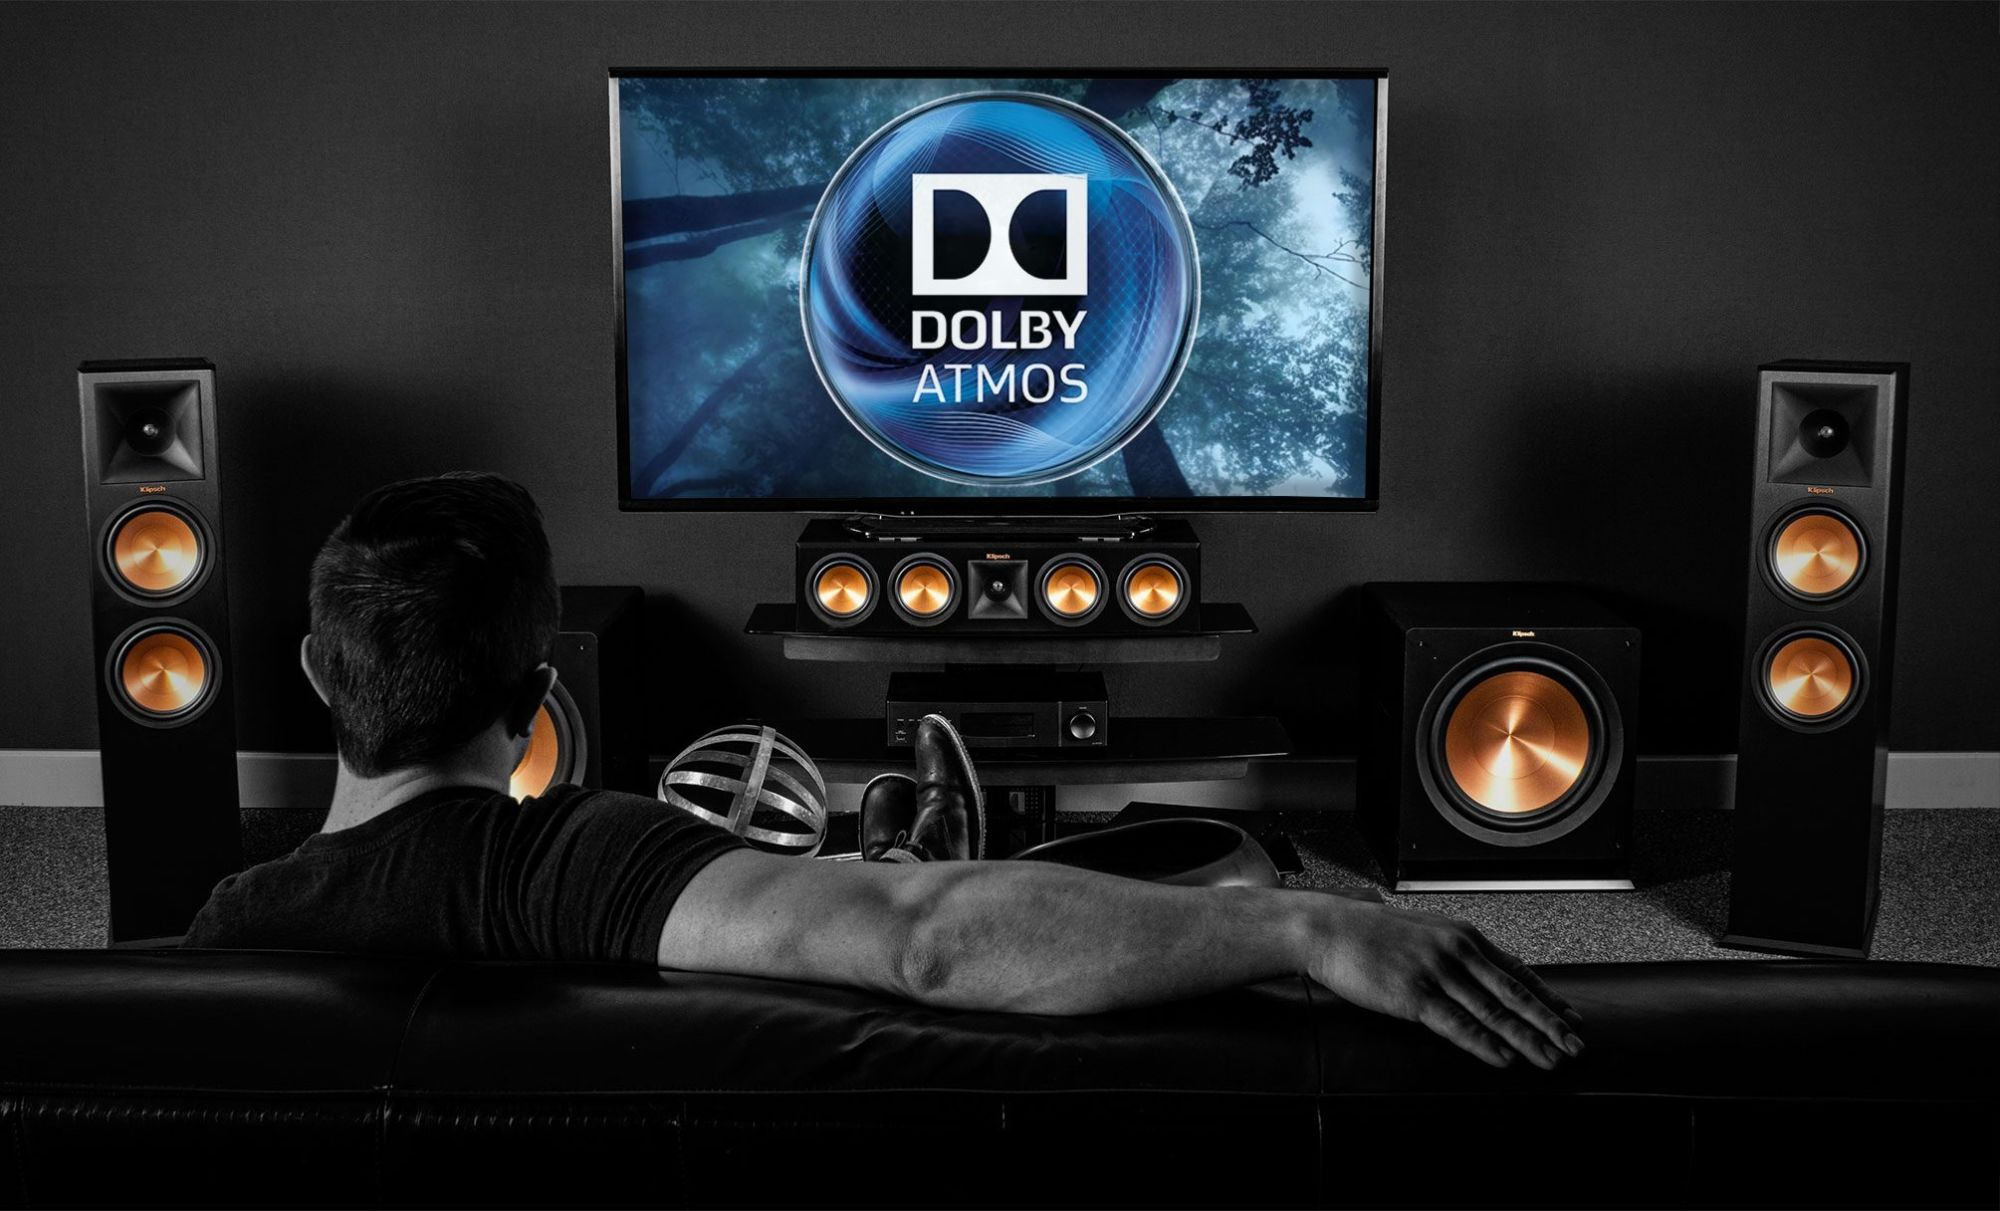 How to Install Dolby Atmos on Android Devices (Root & Non Root)